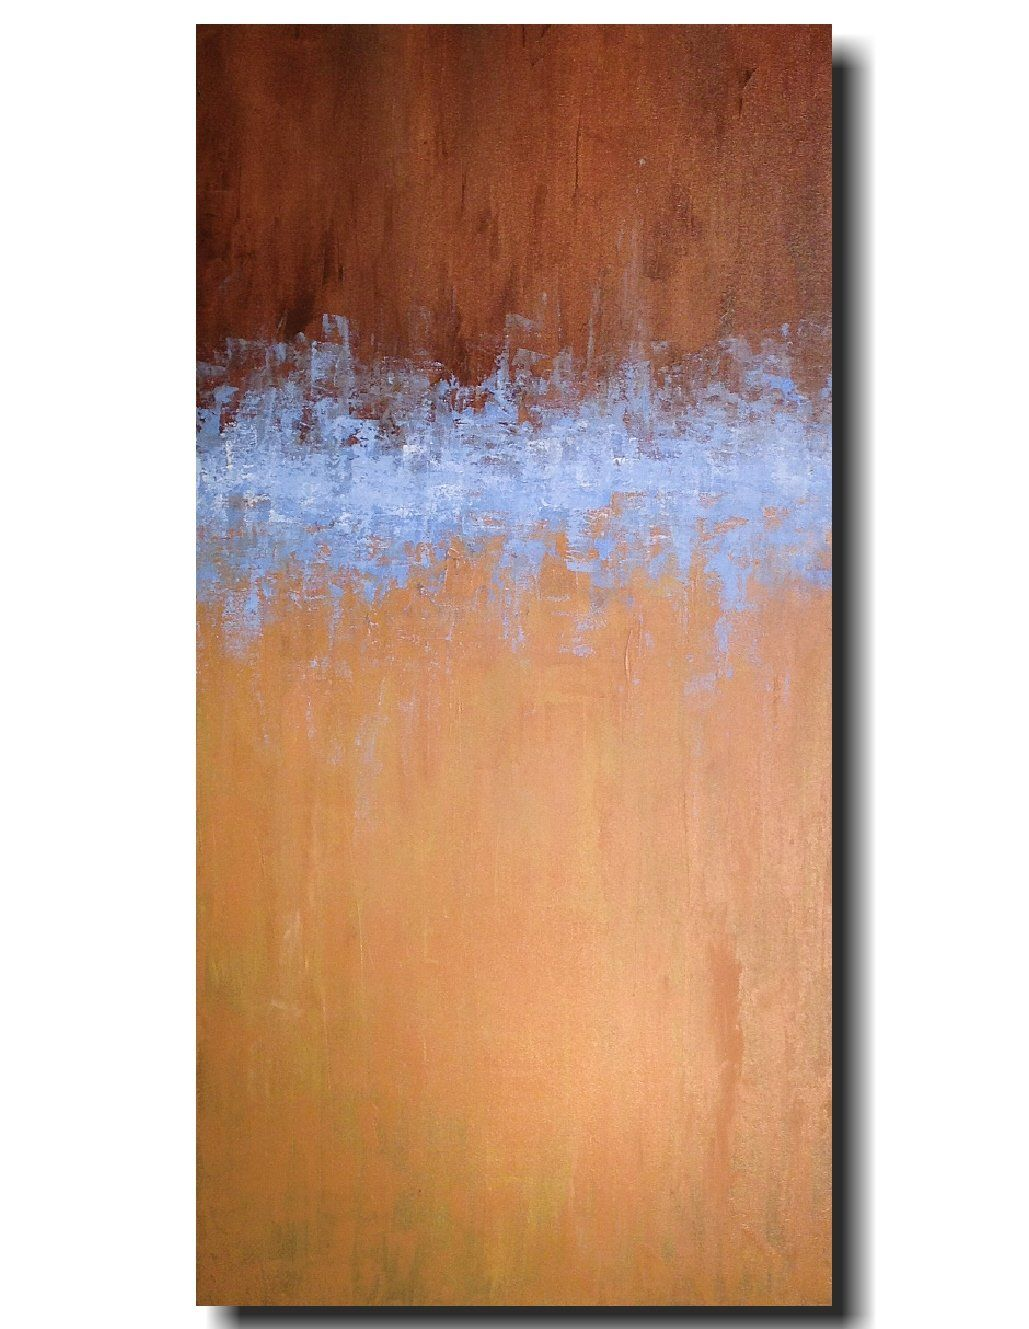 Original large abstract painting x